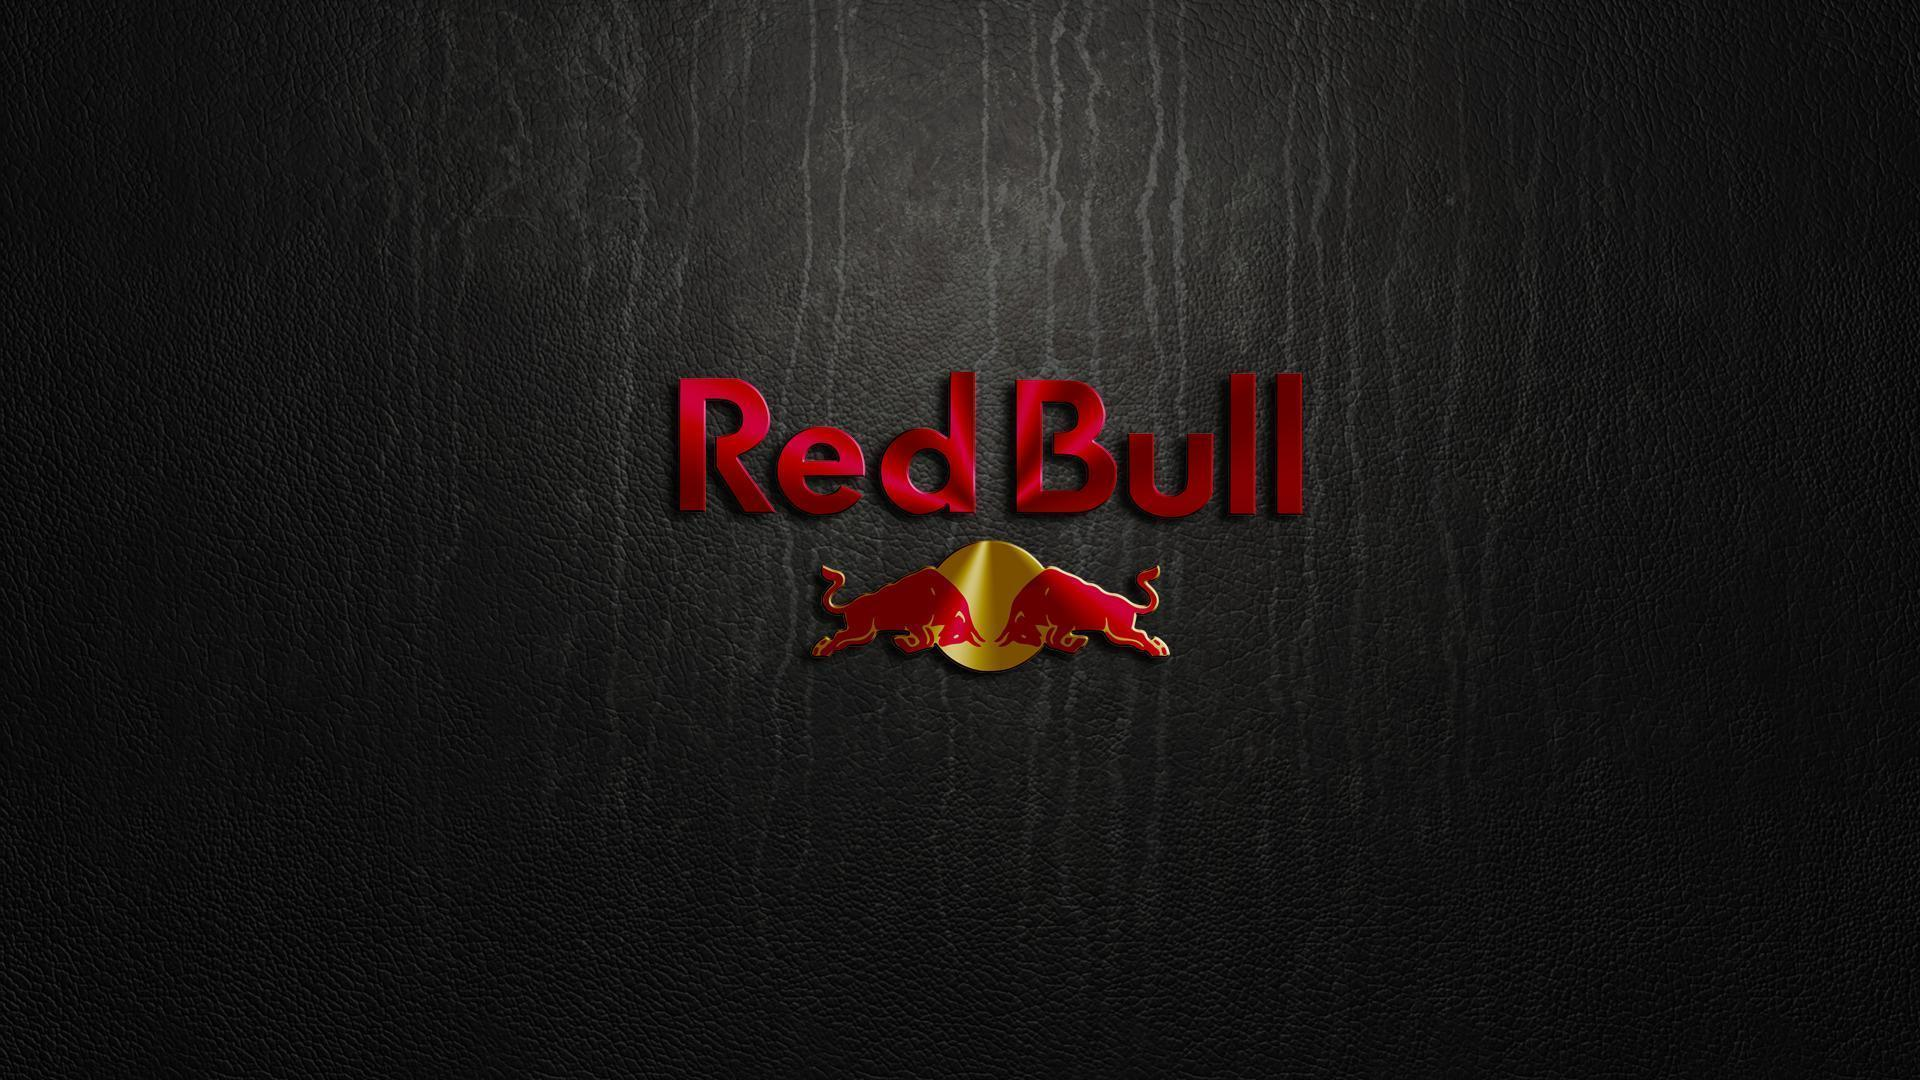 Red Bull Logo And Brand 1920×1080